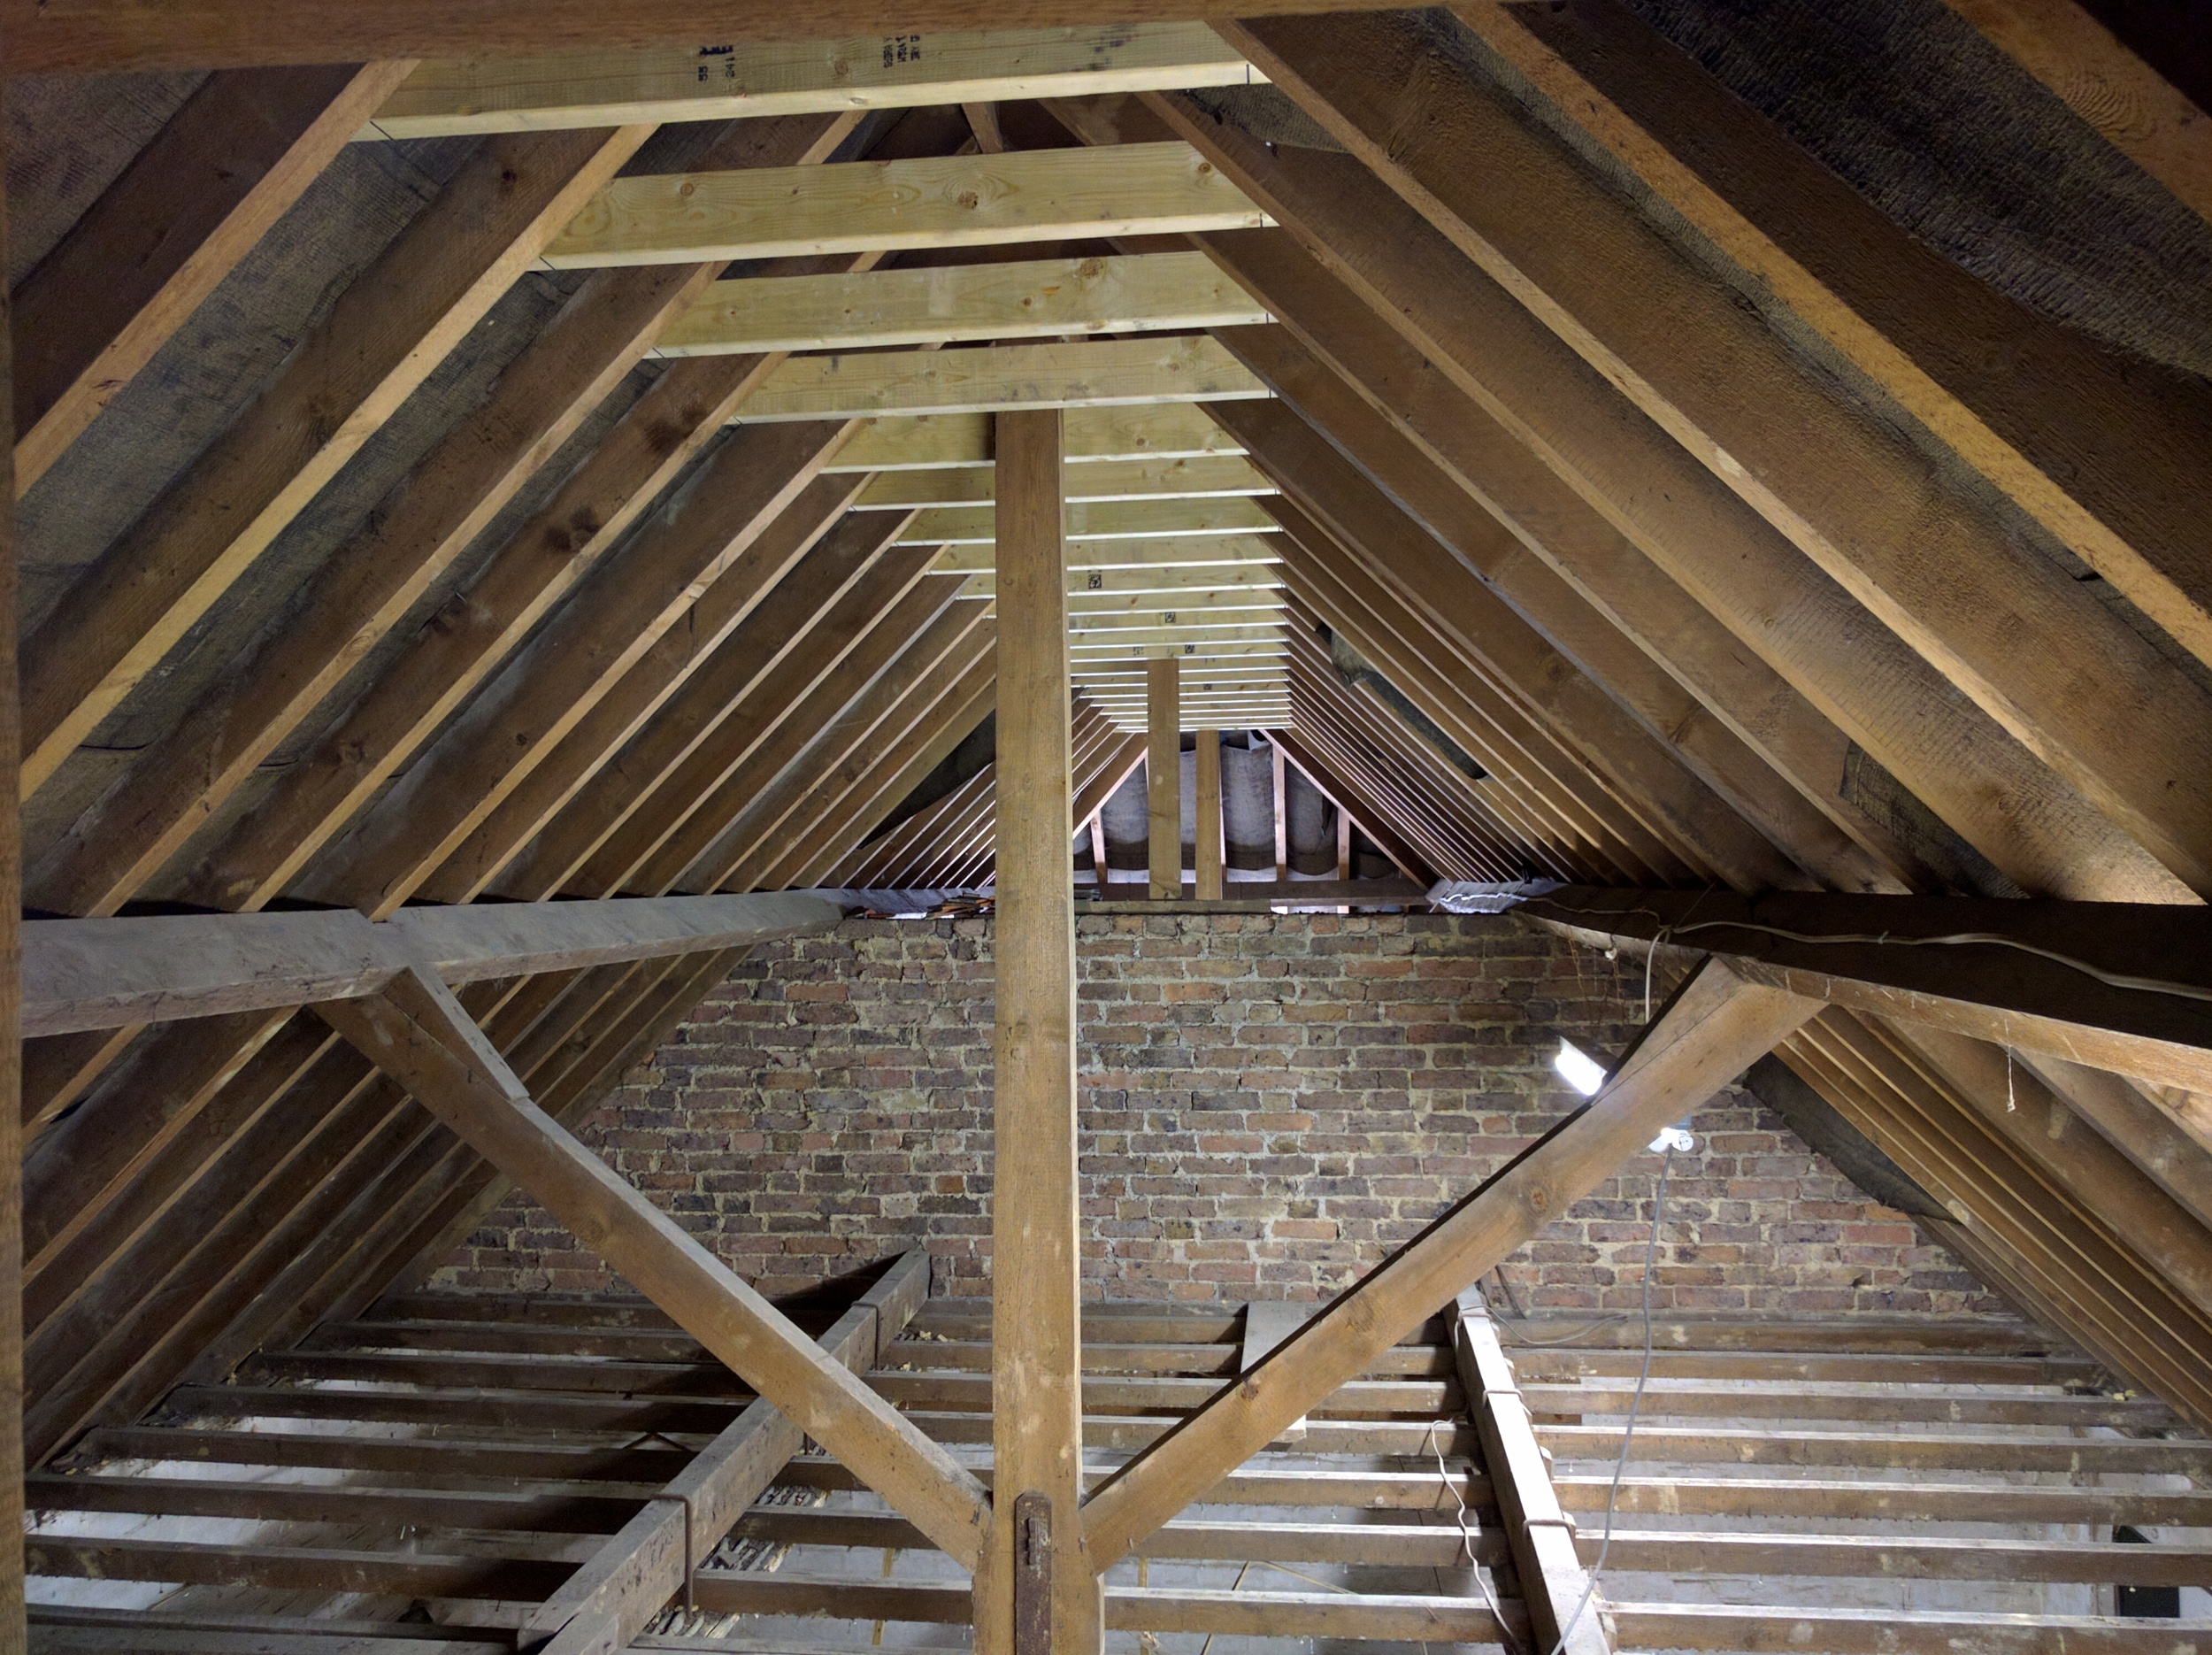 One bat survey, asbestos survey, structural survey later, out comes the ceiling and in go some collar tie beams to stiffen the structure before the ceiling beams come out.